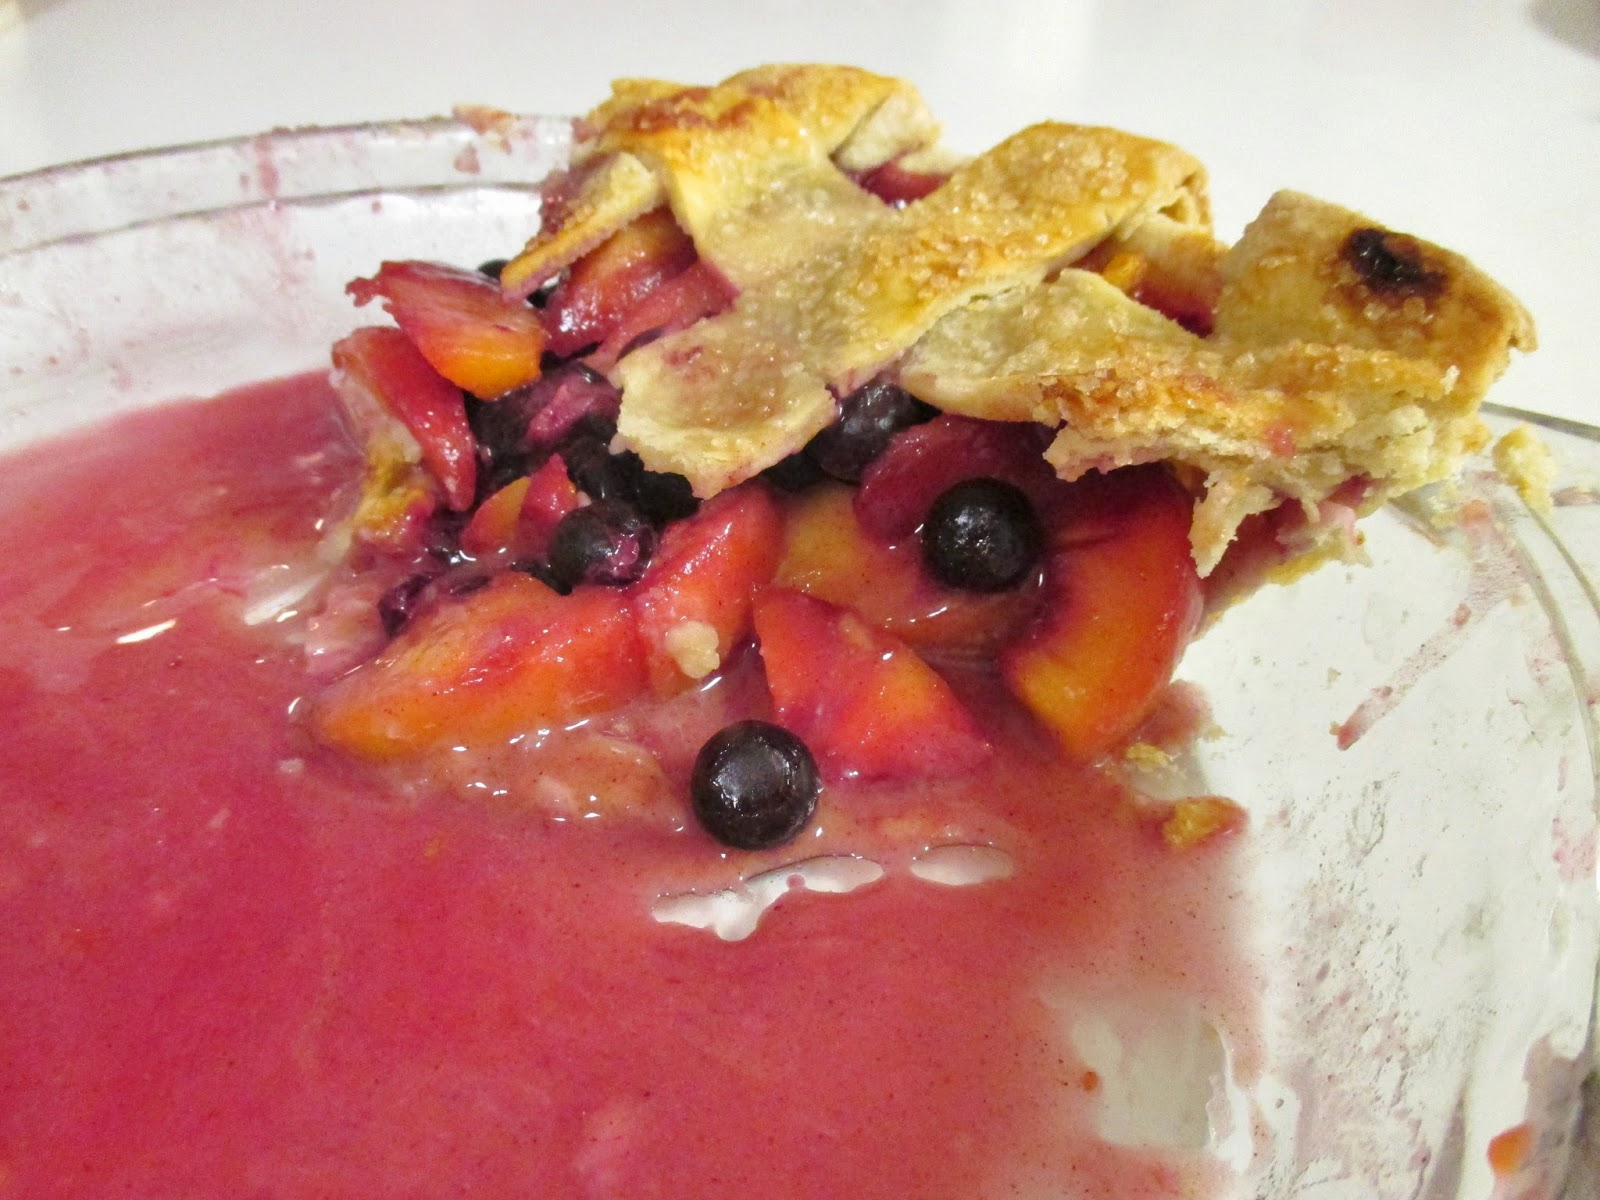 ... , Pies, & Preschool Pizzazz: Friday Pie-Day: Peach Blueberry Pie